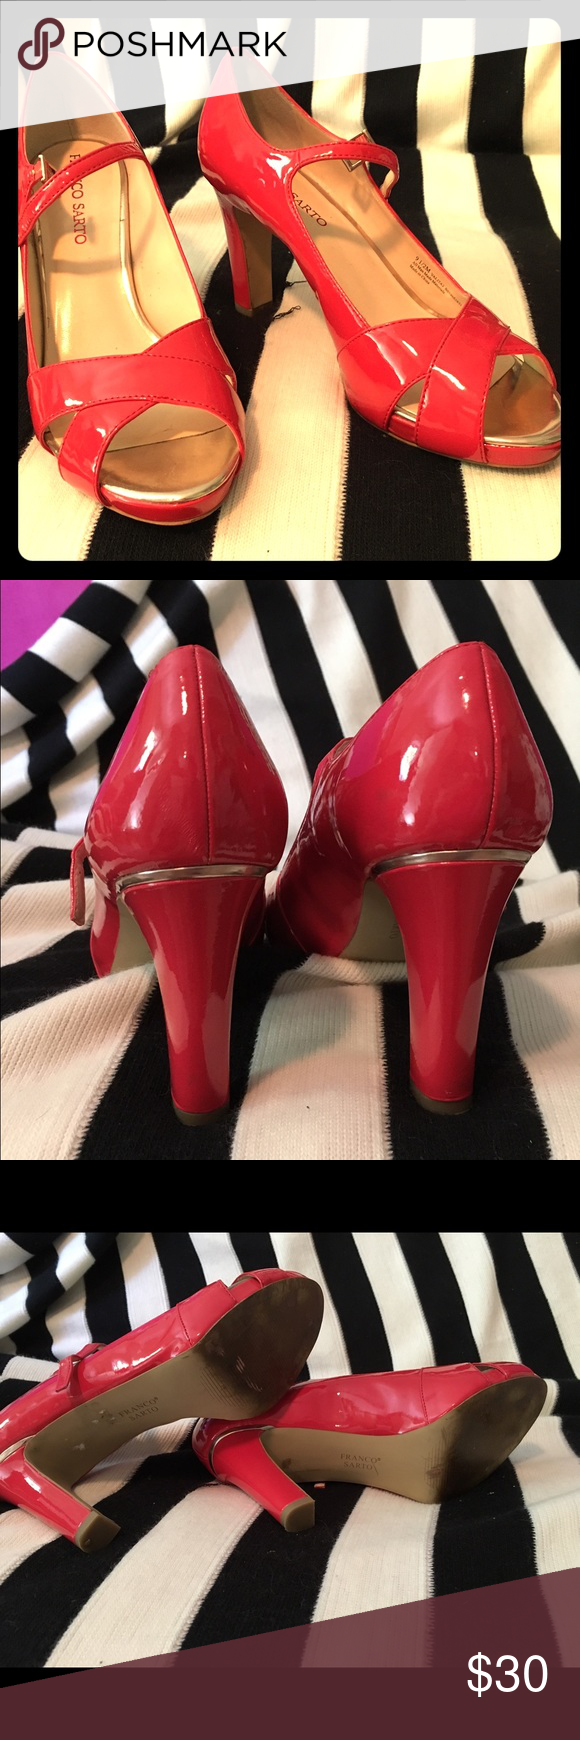 Sassy Coral colored patented leather heels. Beautiful shoes from Franco Sarto in the seasons hot color, summer coral. Like new, slight wear on bottoms (see photo). Franco Sarto Shoes Heels